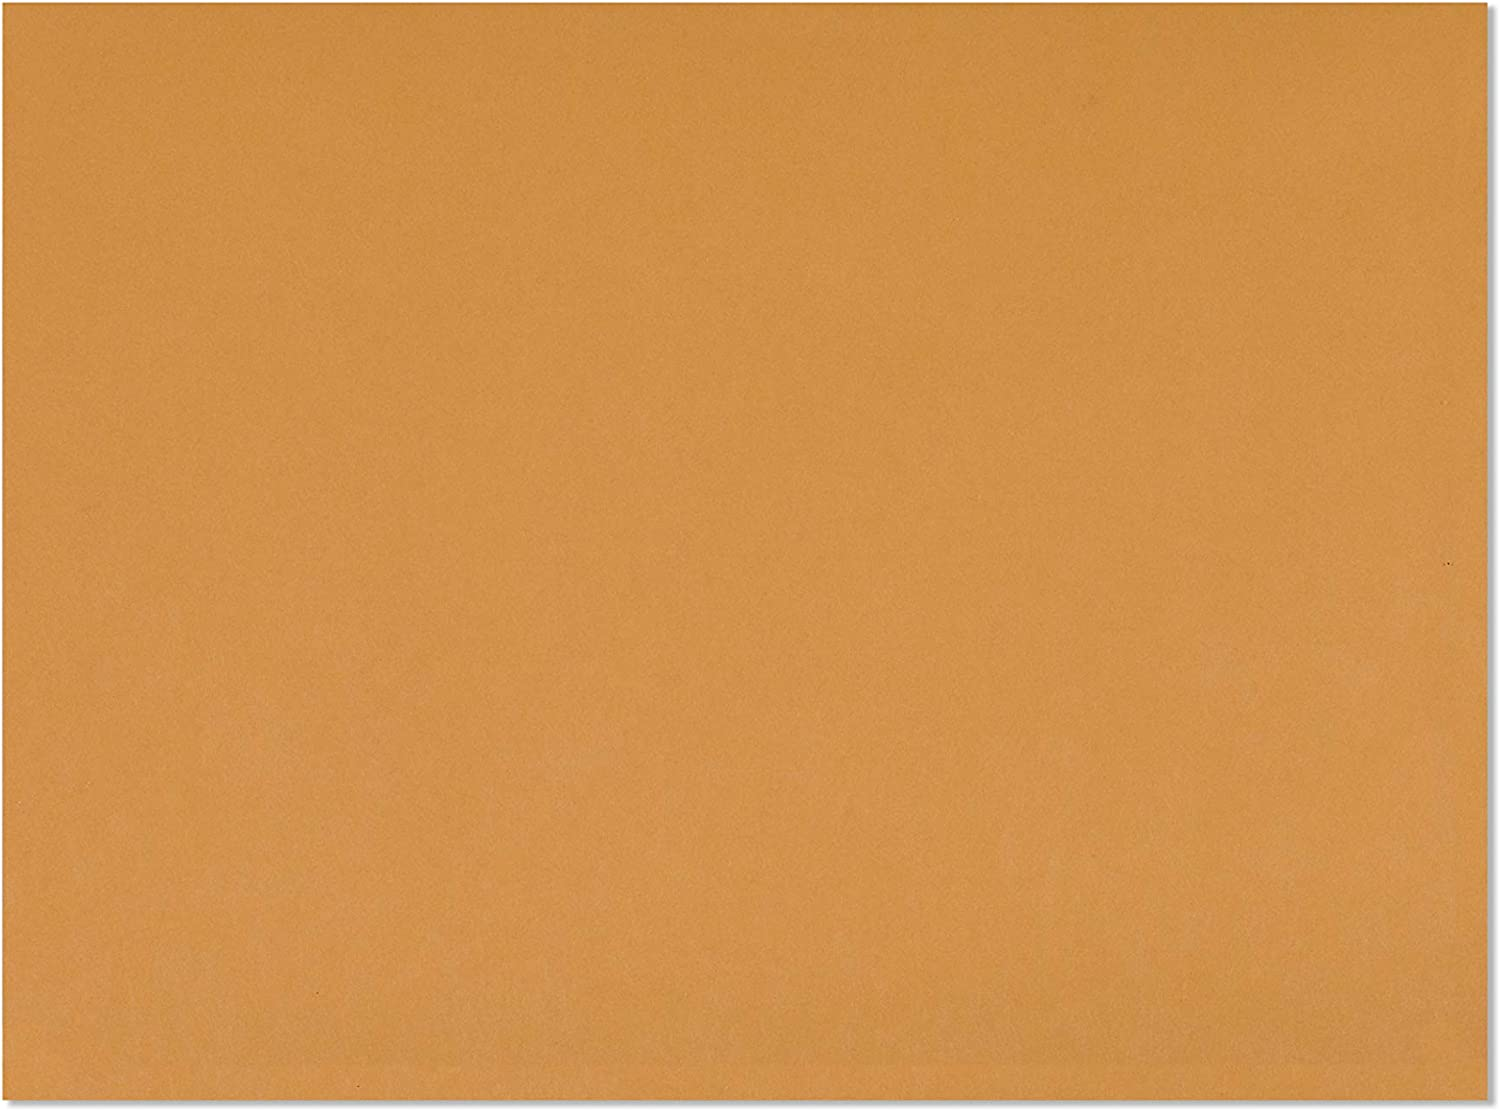 Check O Matic 9x12 Brown Booklet Open Side Envelopes – Gummed Seal 9 x 12 Inches Mailing Envelope, For Home, Office, Business, Legal or School - 100 Pack : Office Products